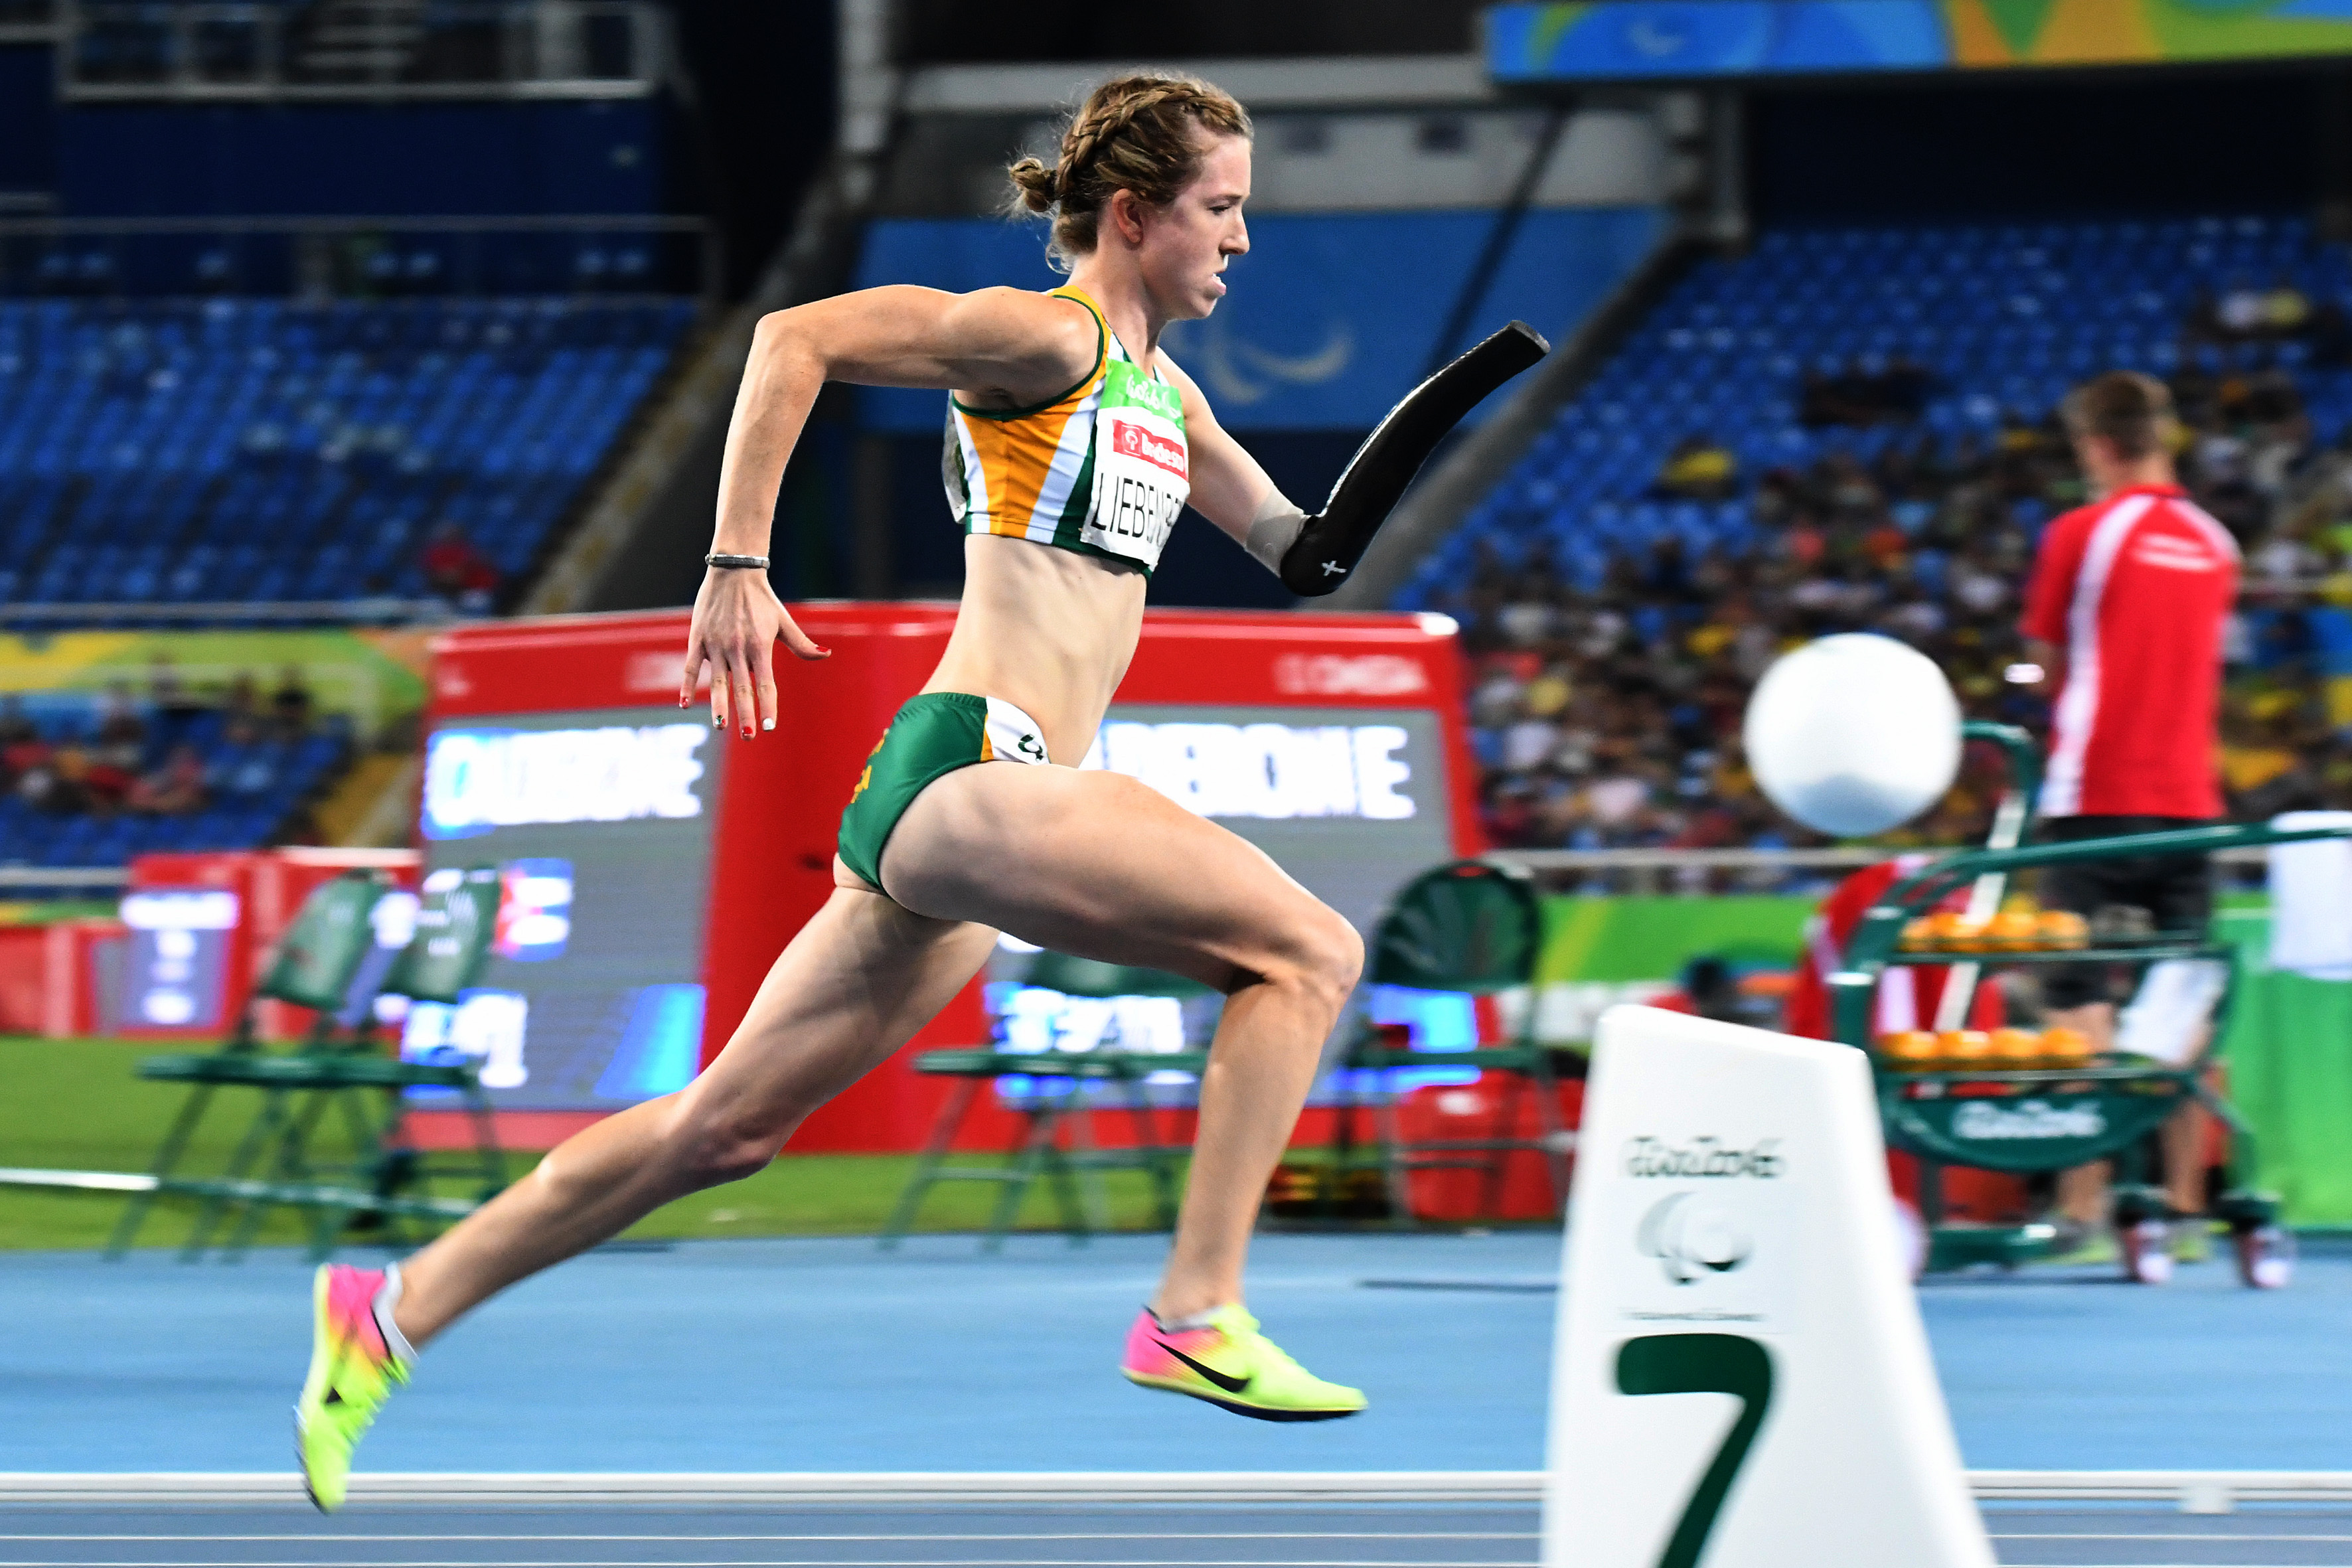 Liebenberg bounces back from surgery to seal silver for Team SA